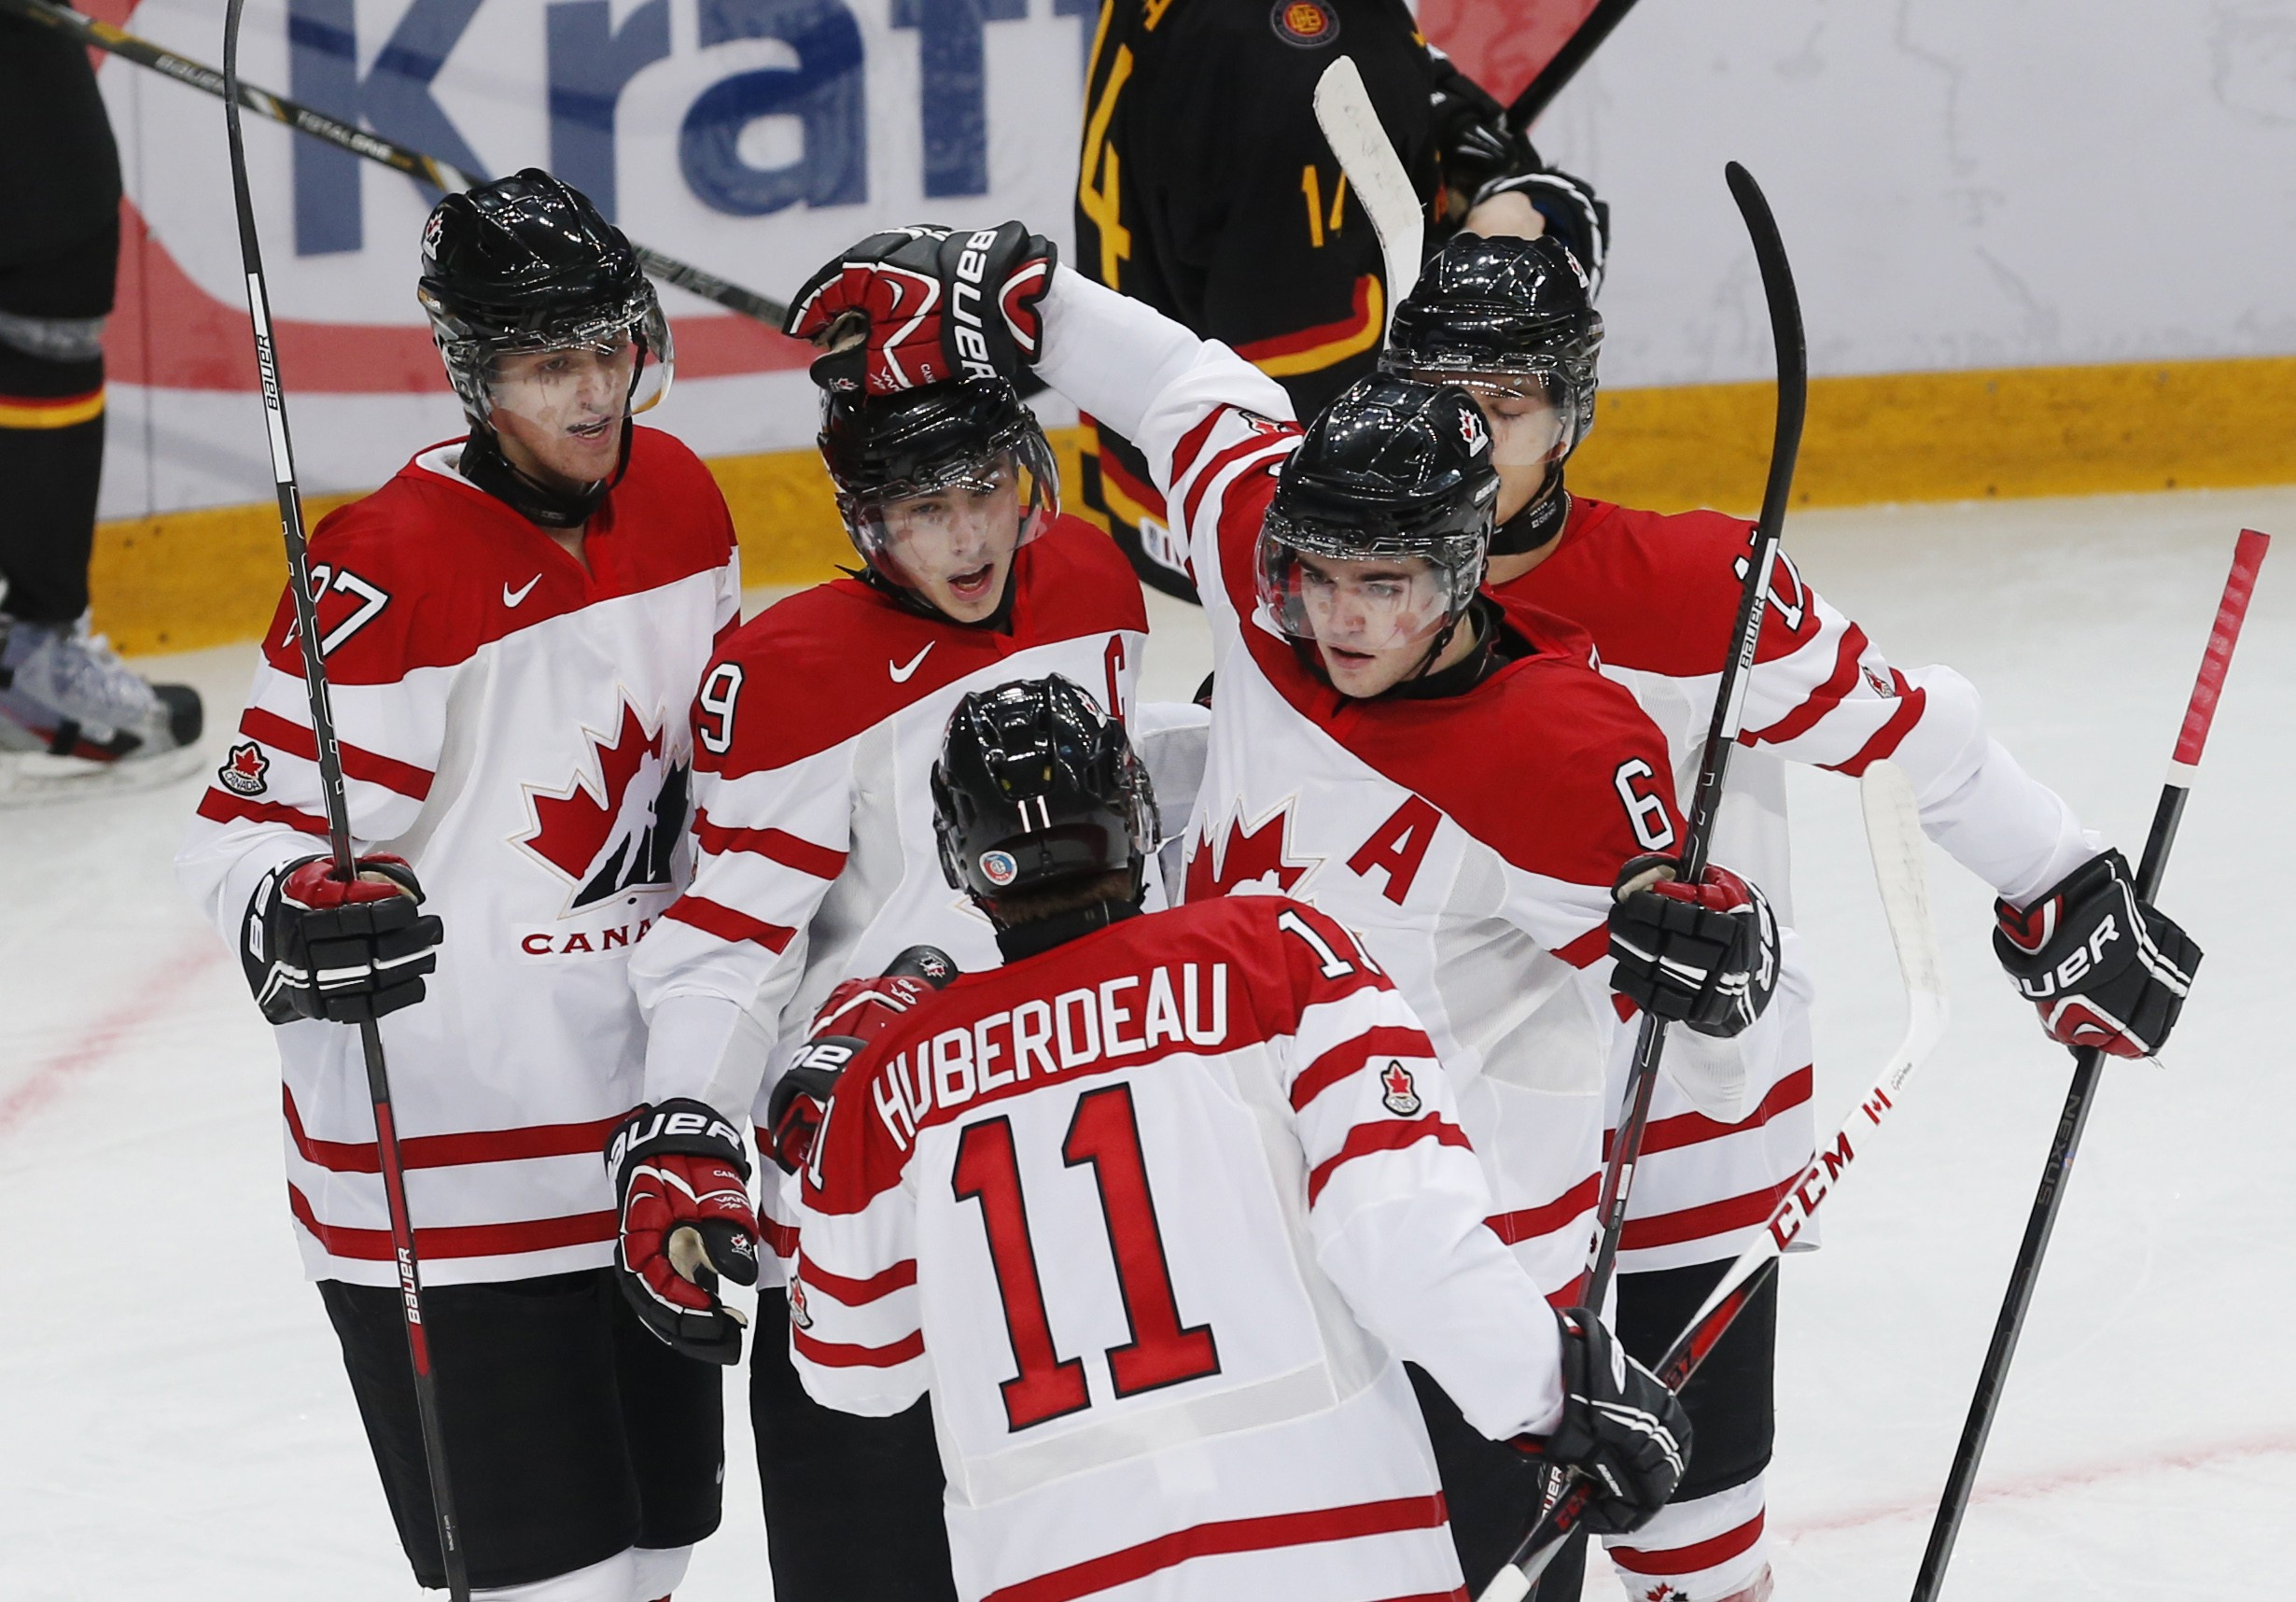 Canada's top line was too powerful for Germany. (Reuters)